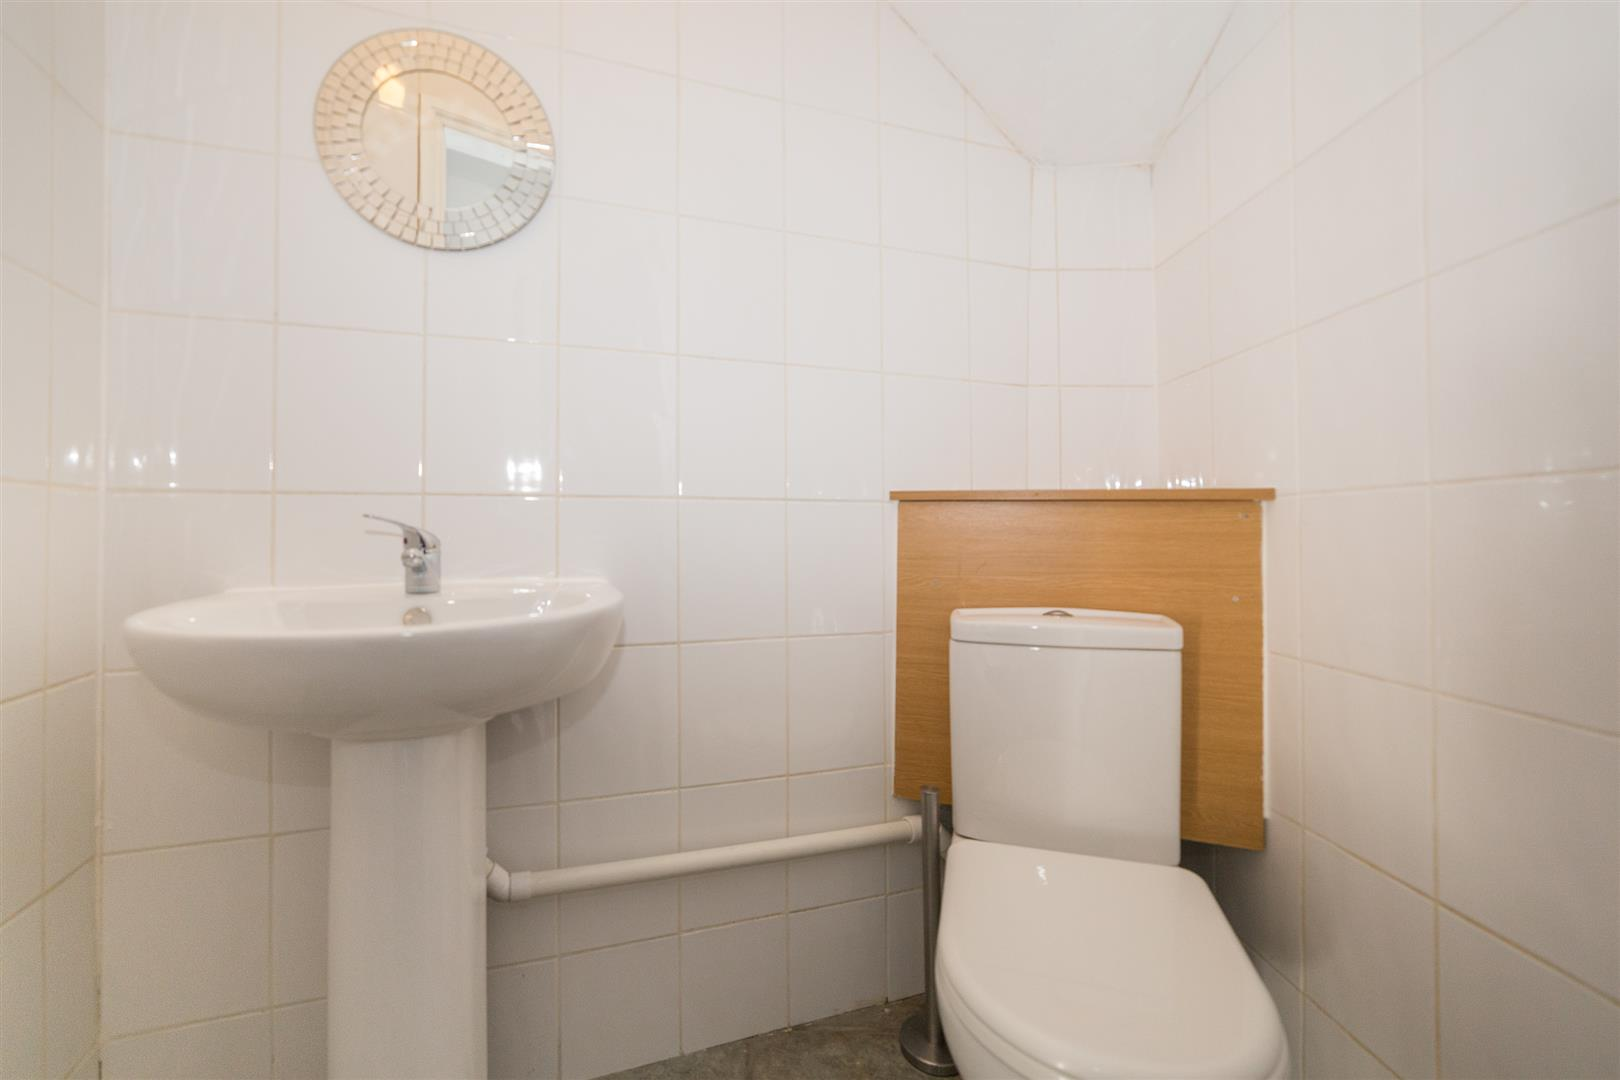 7 bed maisonette to rent in Newcastle Upon Tyne, NE2 1LB  - Property Image 11